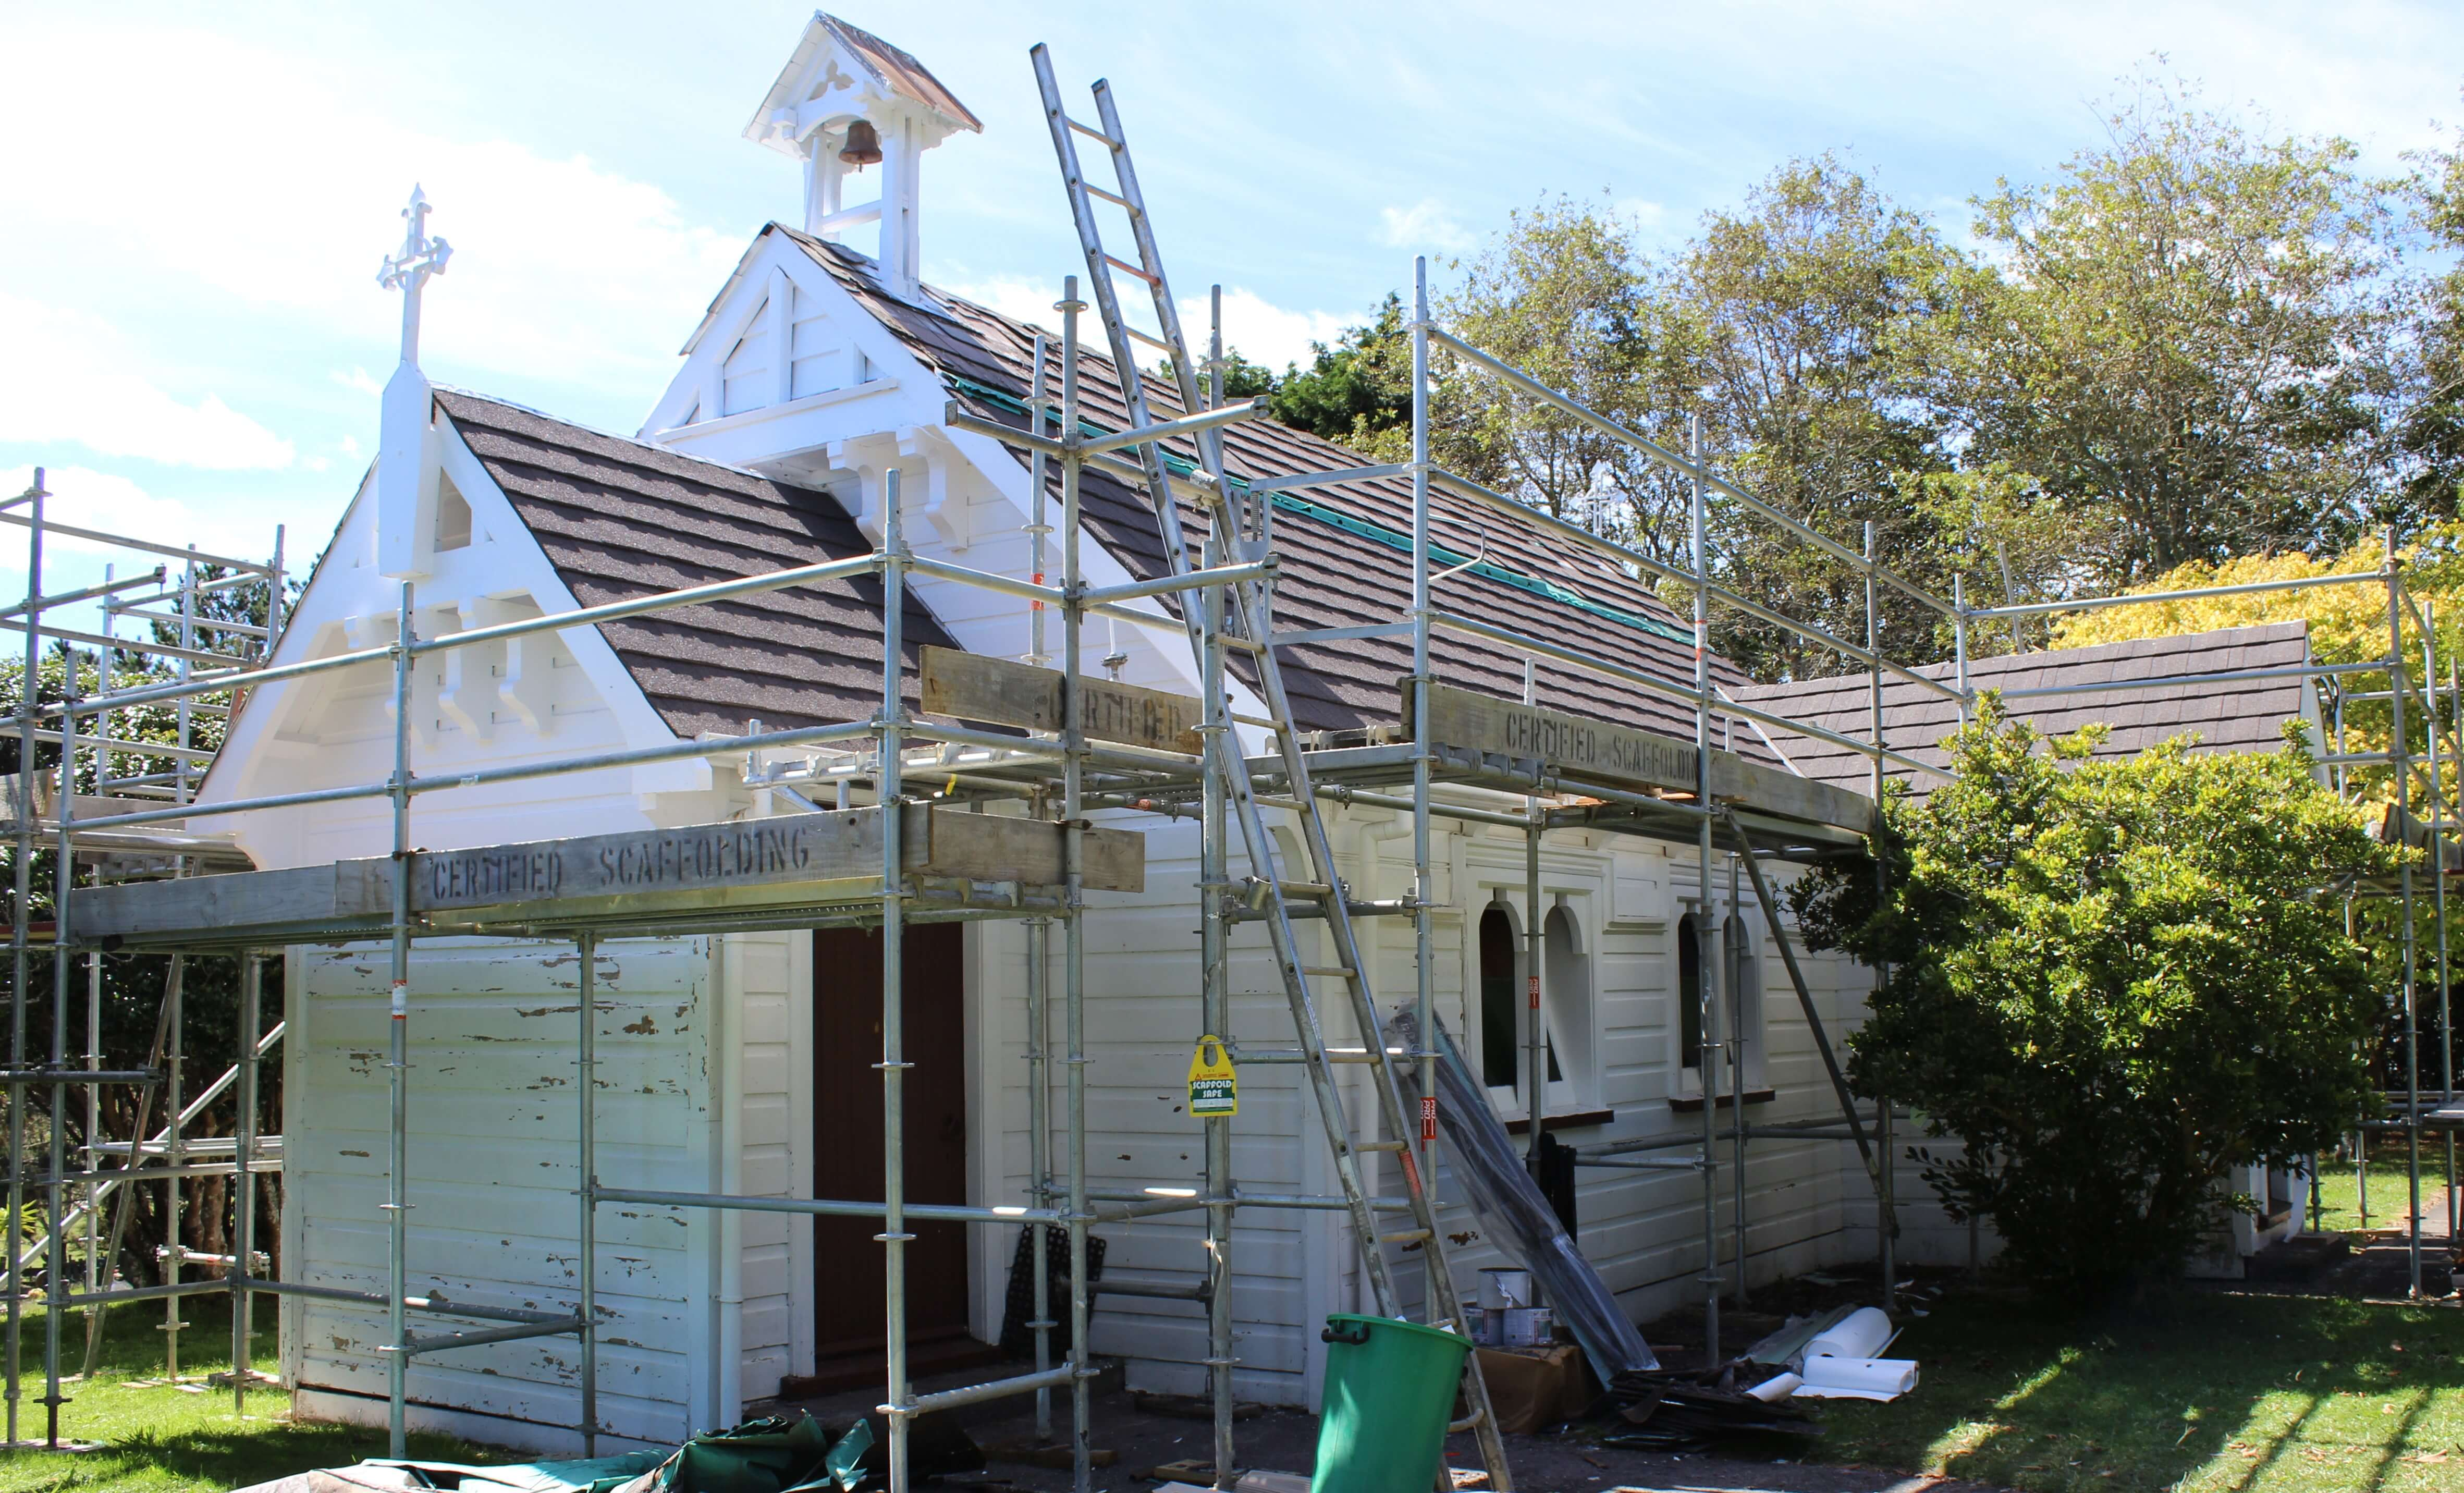 St James' church fully scaffolded before re-roofing